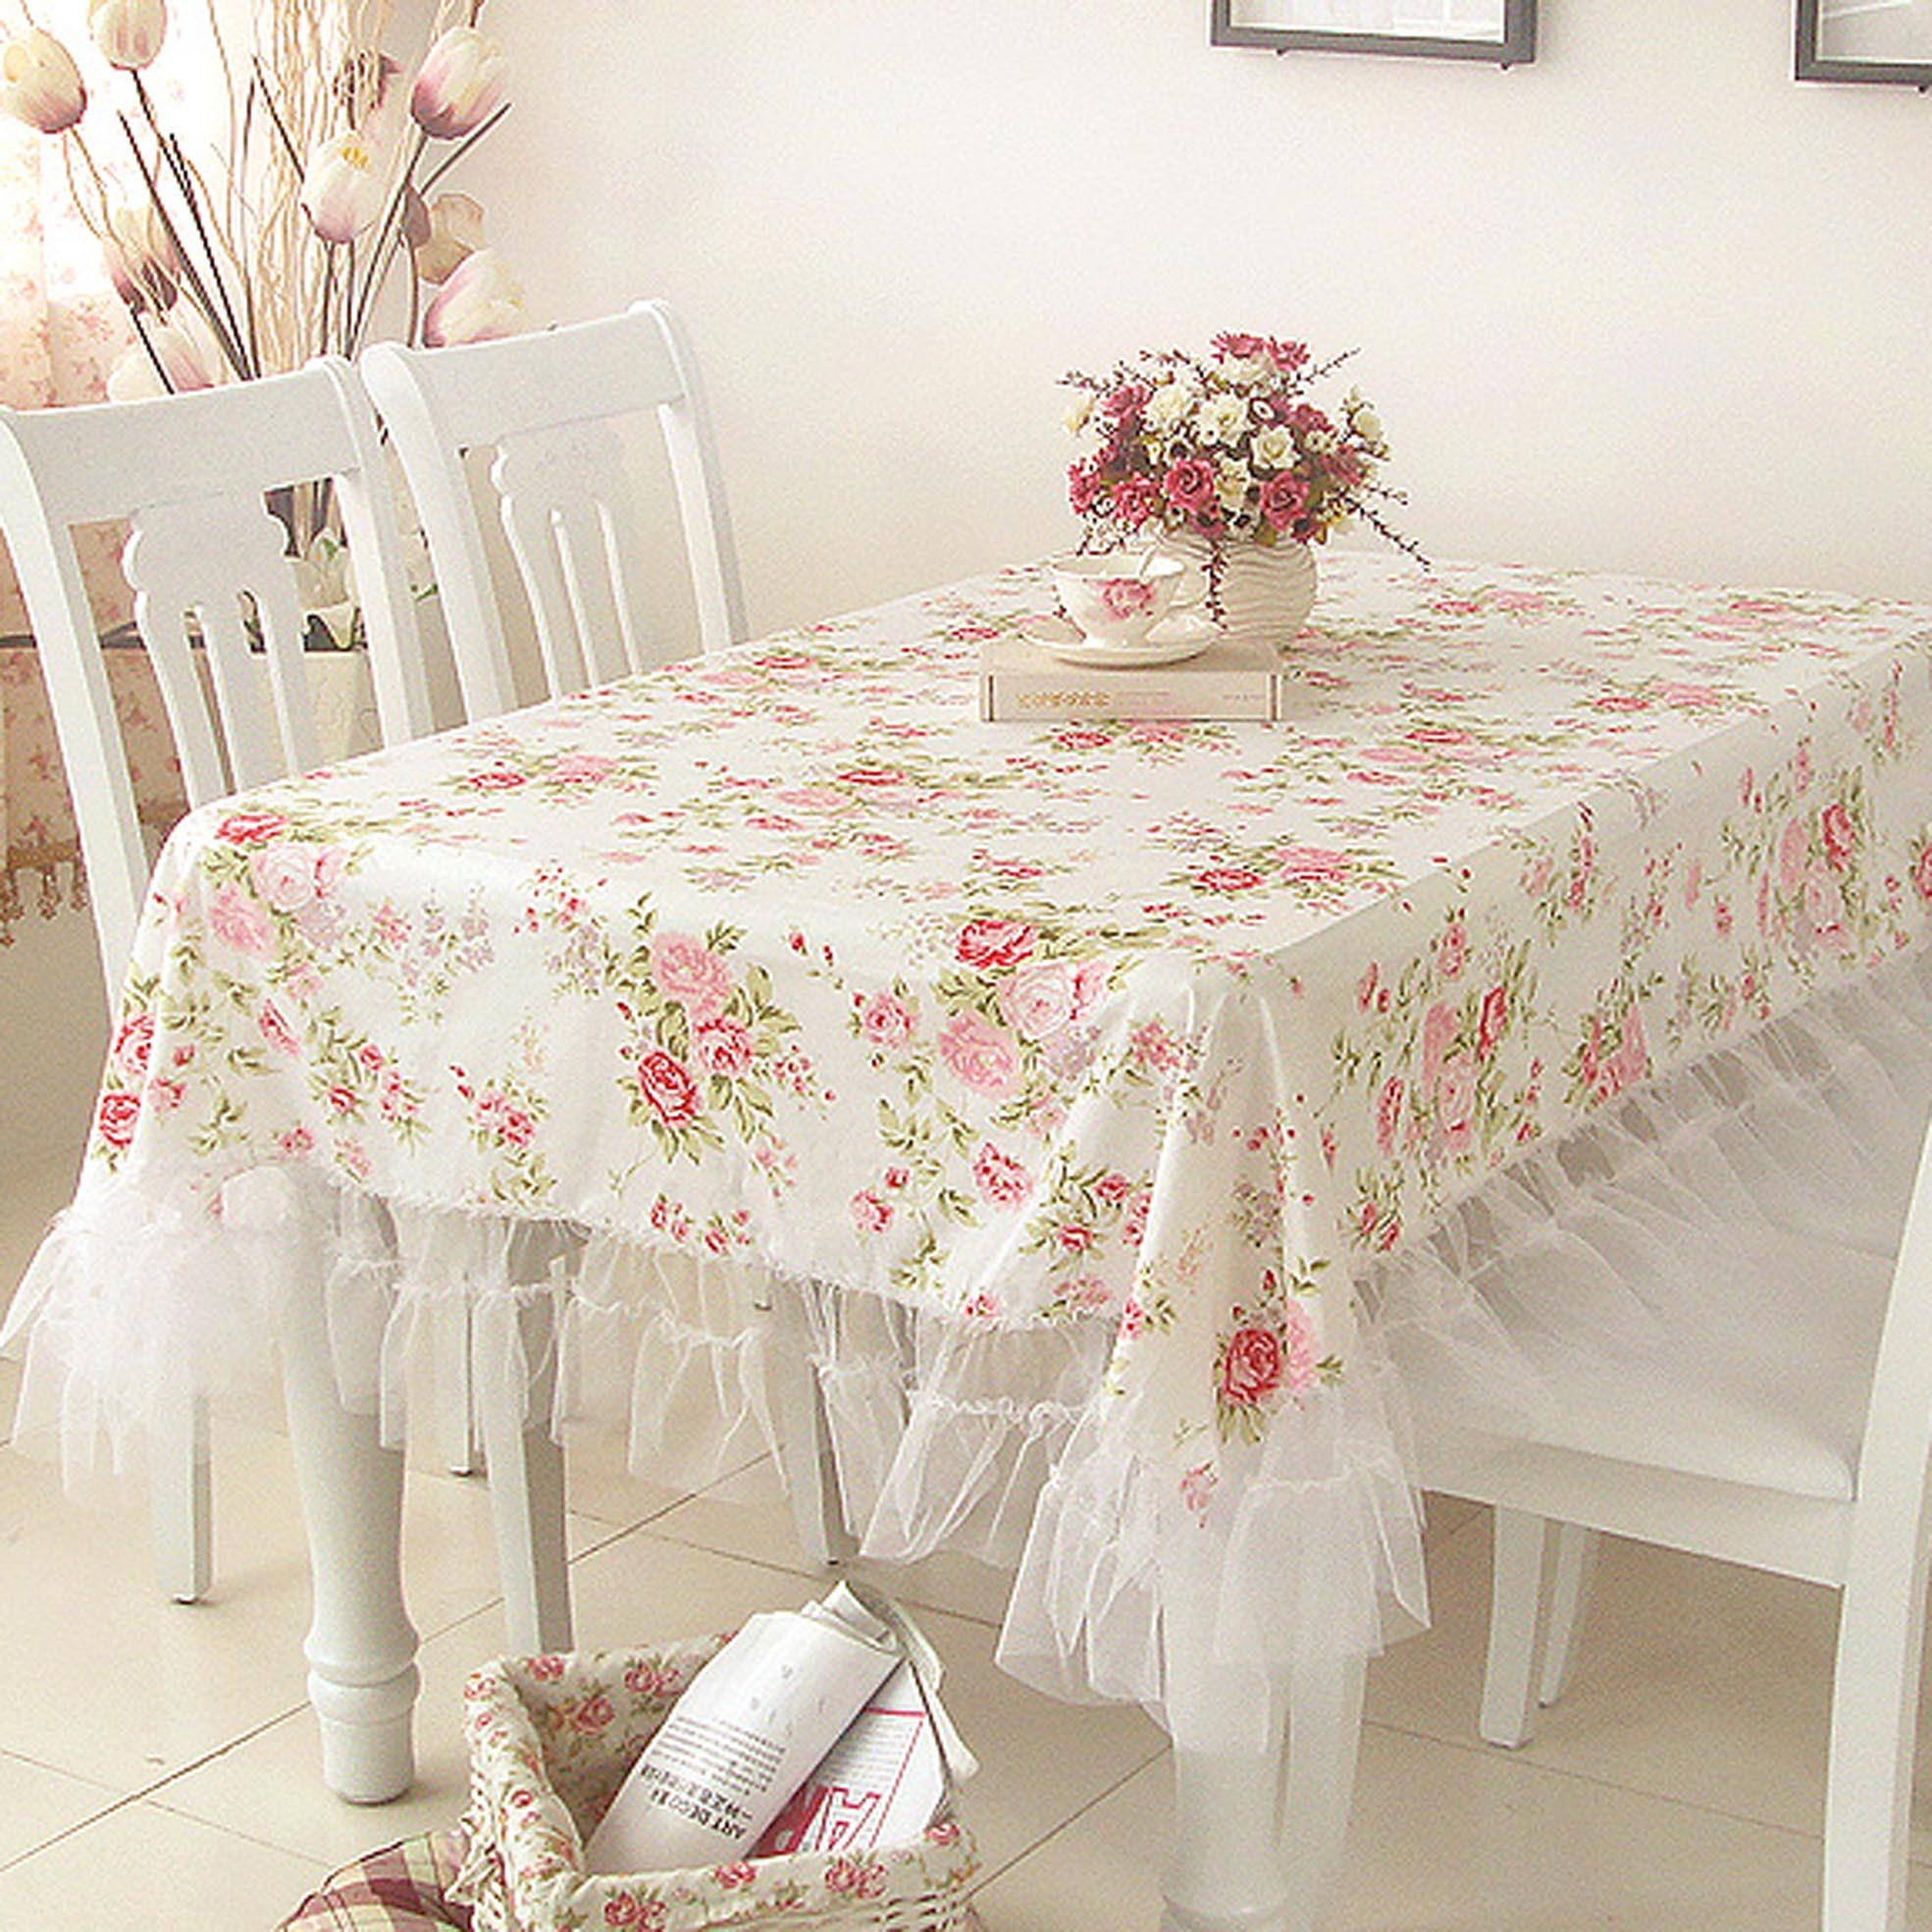 Shabby Chic Tablelcoth